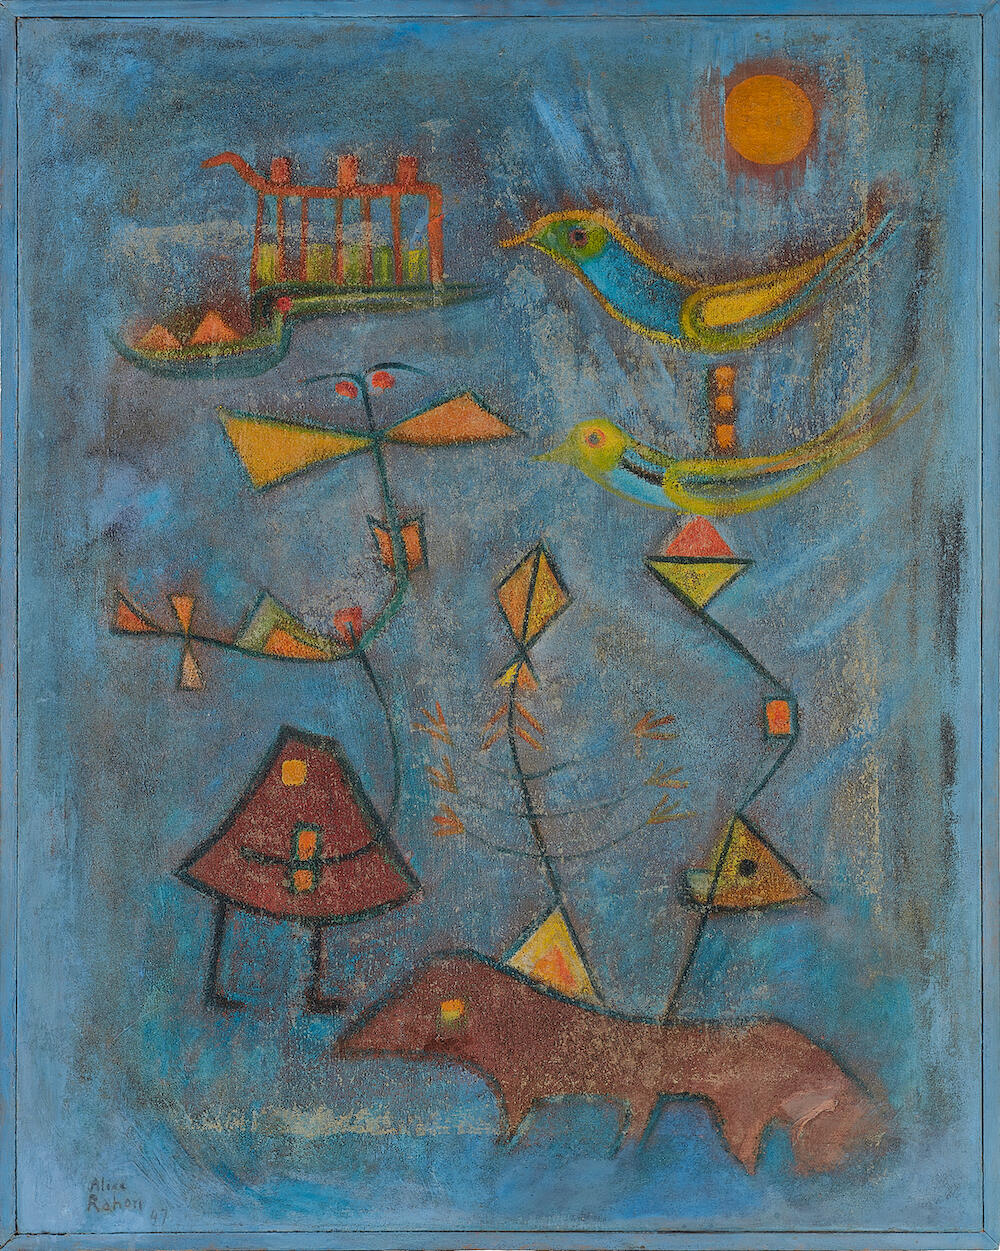 Alice Rahon, Painting for a Little Ghost Who Couldn't Learn to Read, 1947, oil and sand on canvas, 35 1/4 x 28 13/16 inches (89.5 x 73.2 cm